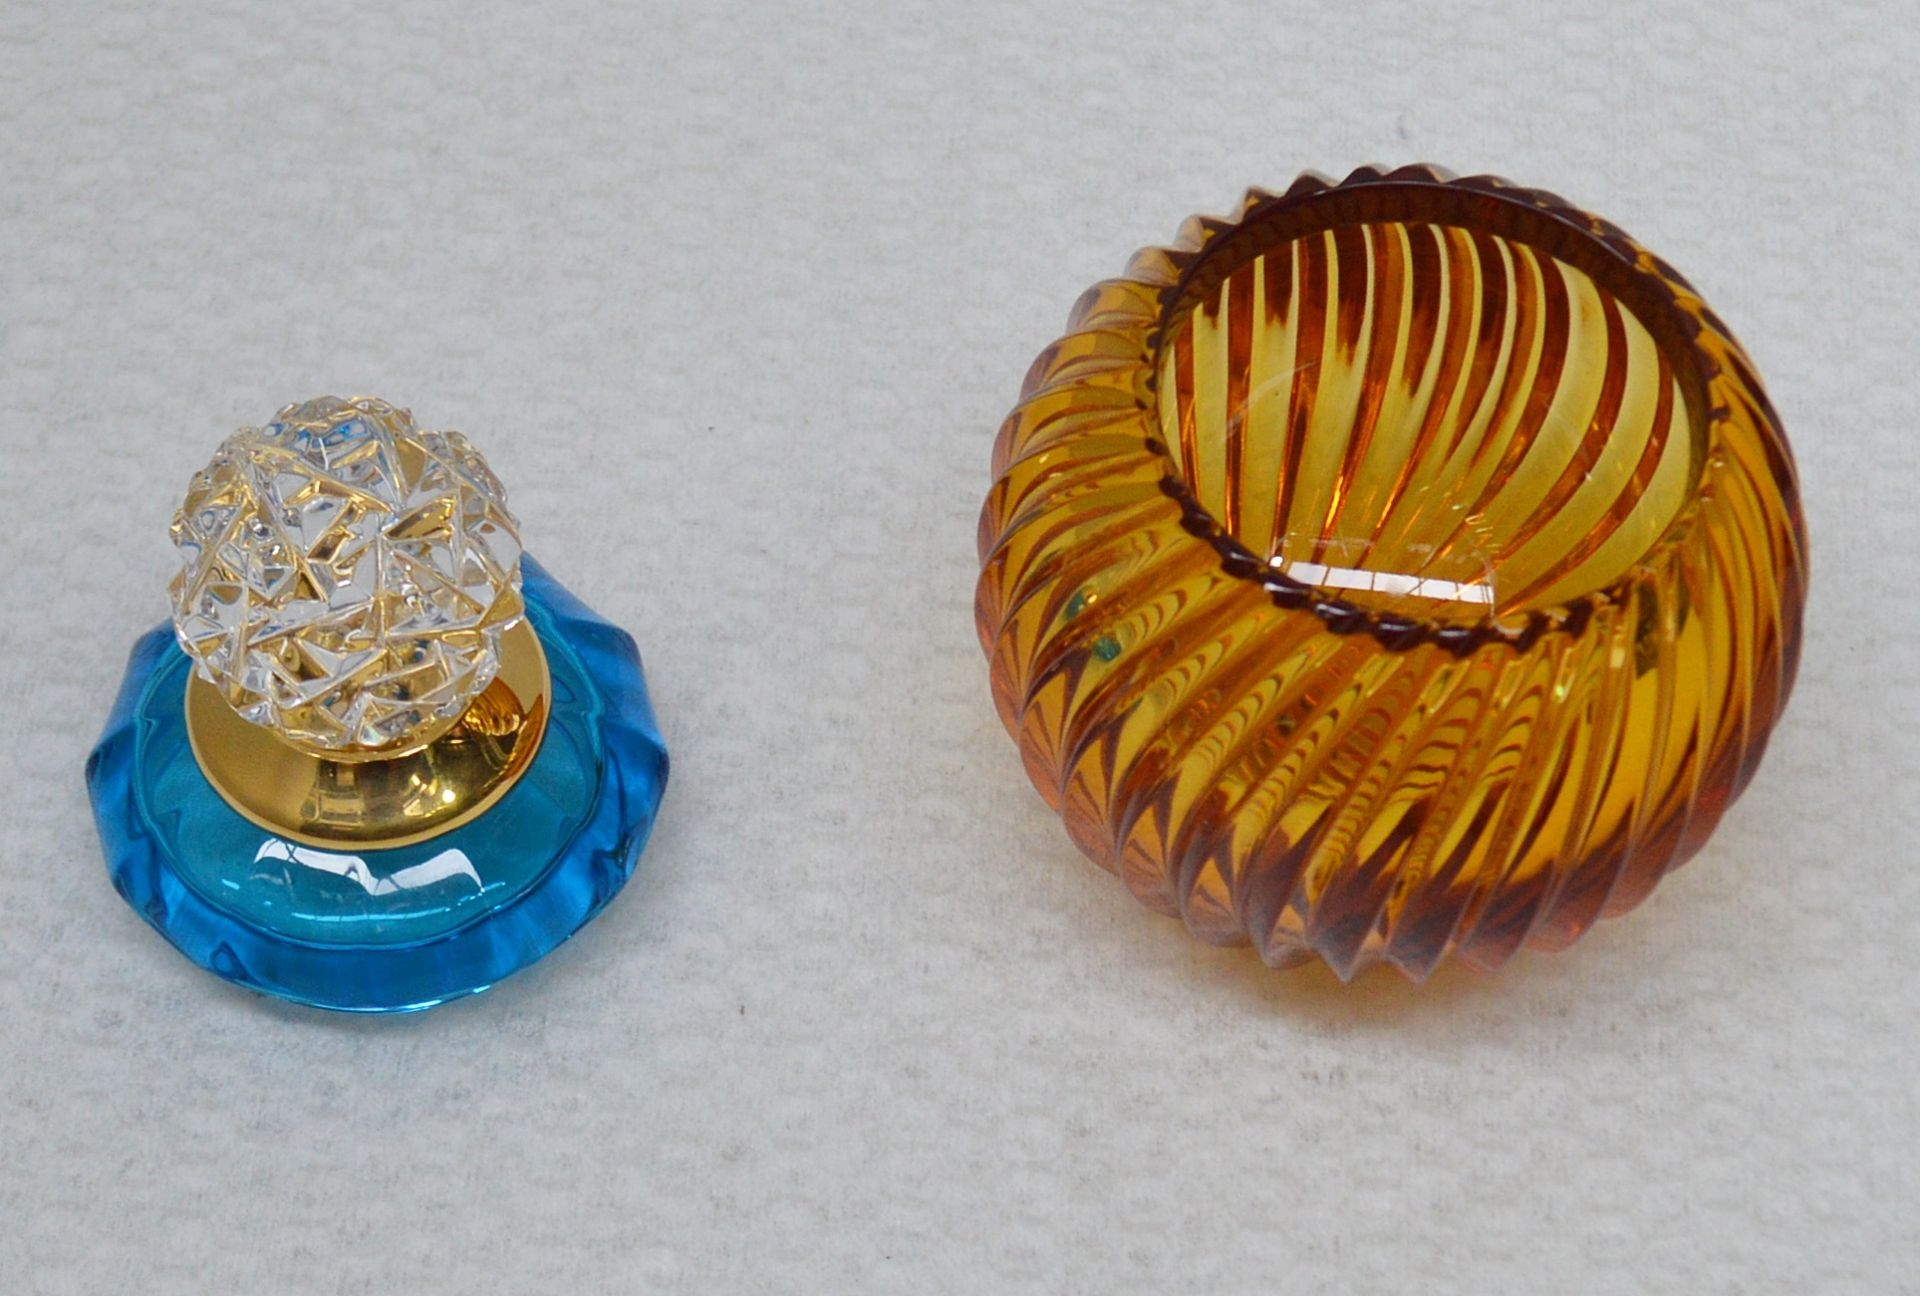 1 x BALDI 'Home Jewels' Italian Hand-crafted Artisan Small Coccinella Jar In Blue And Orange Crystal - Image 3 of 3